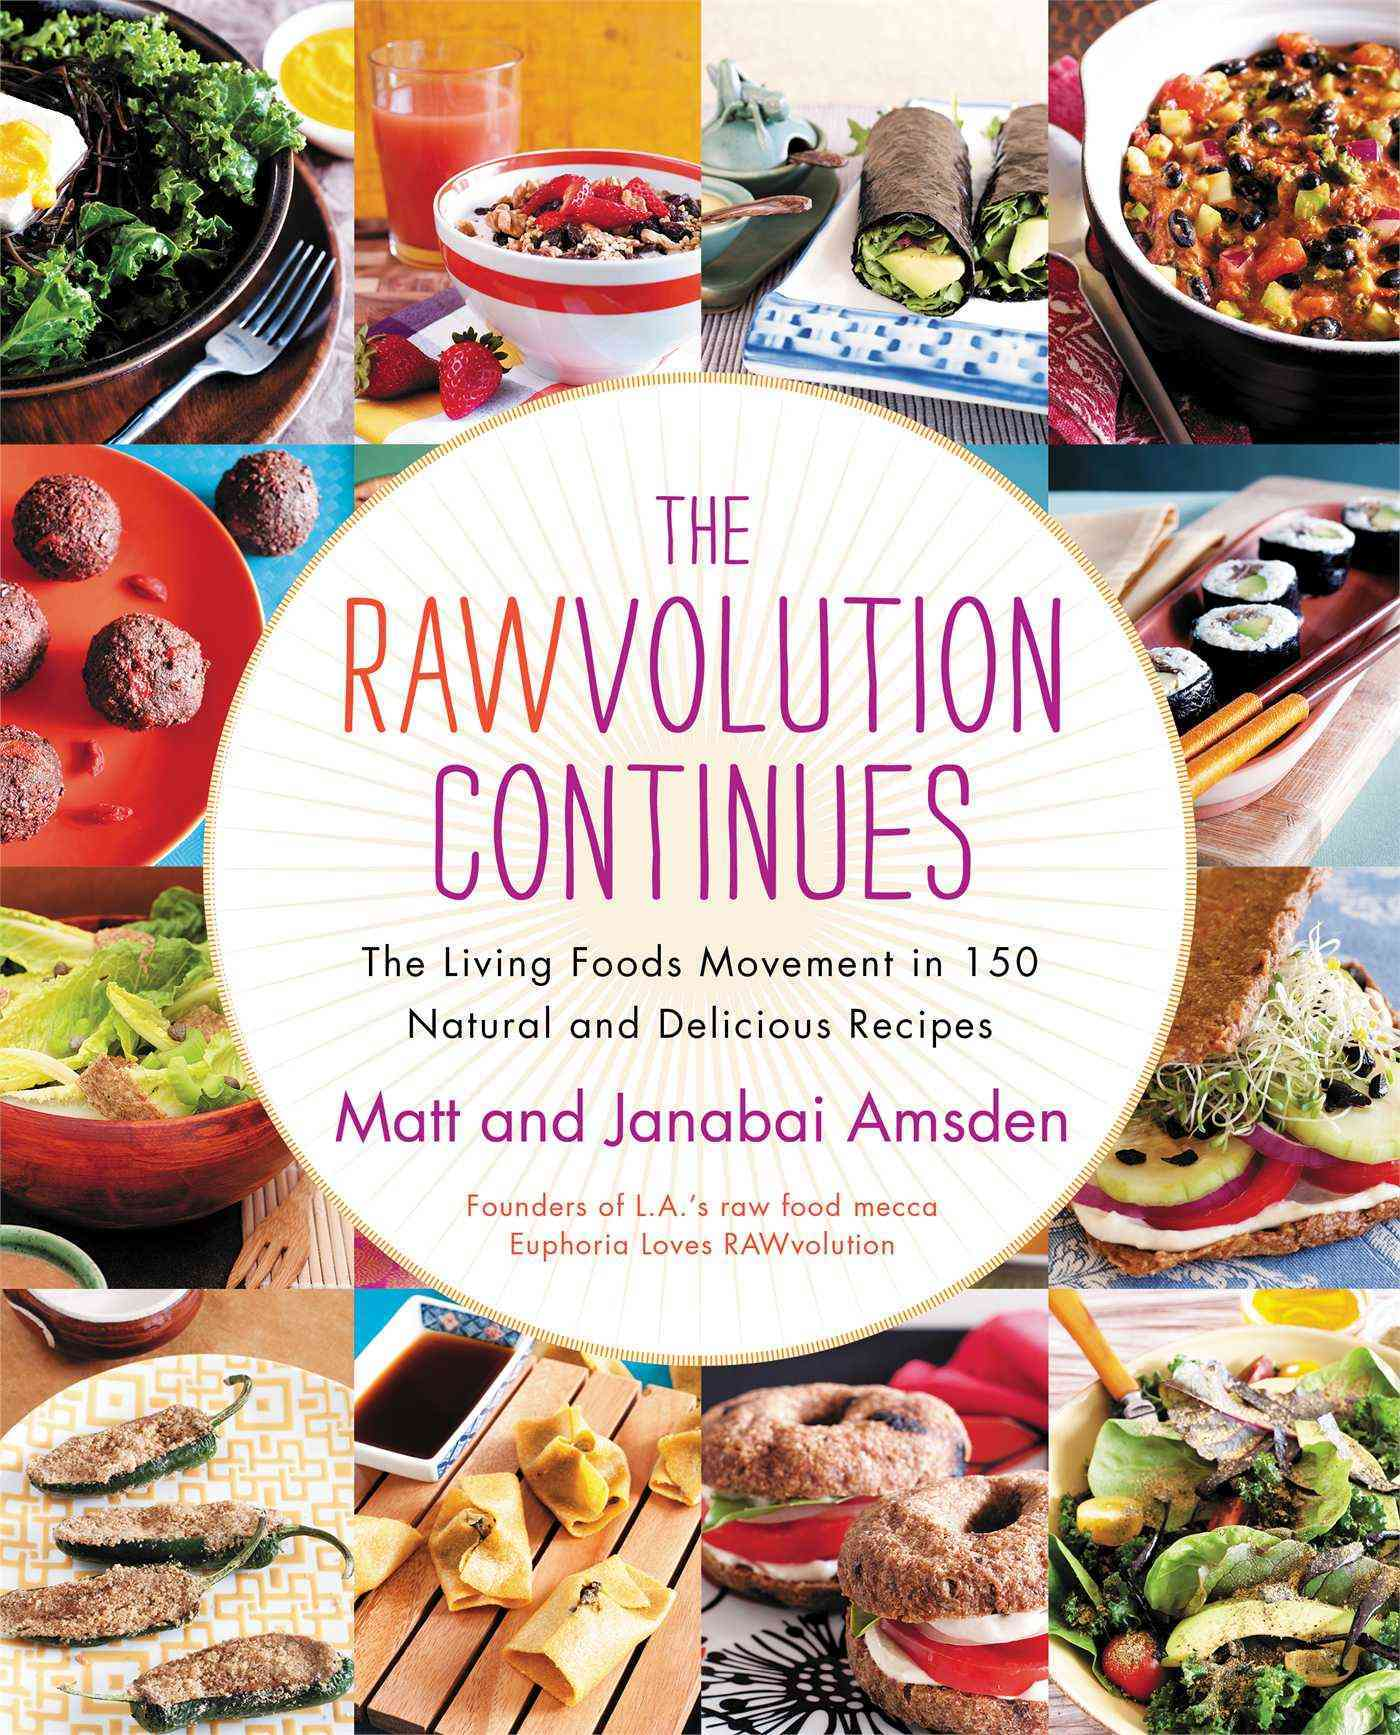 The Rawvolution Continues: The Living Foods Movement in 150 Natural and Delicious Recipes (Hardcover)